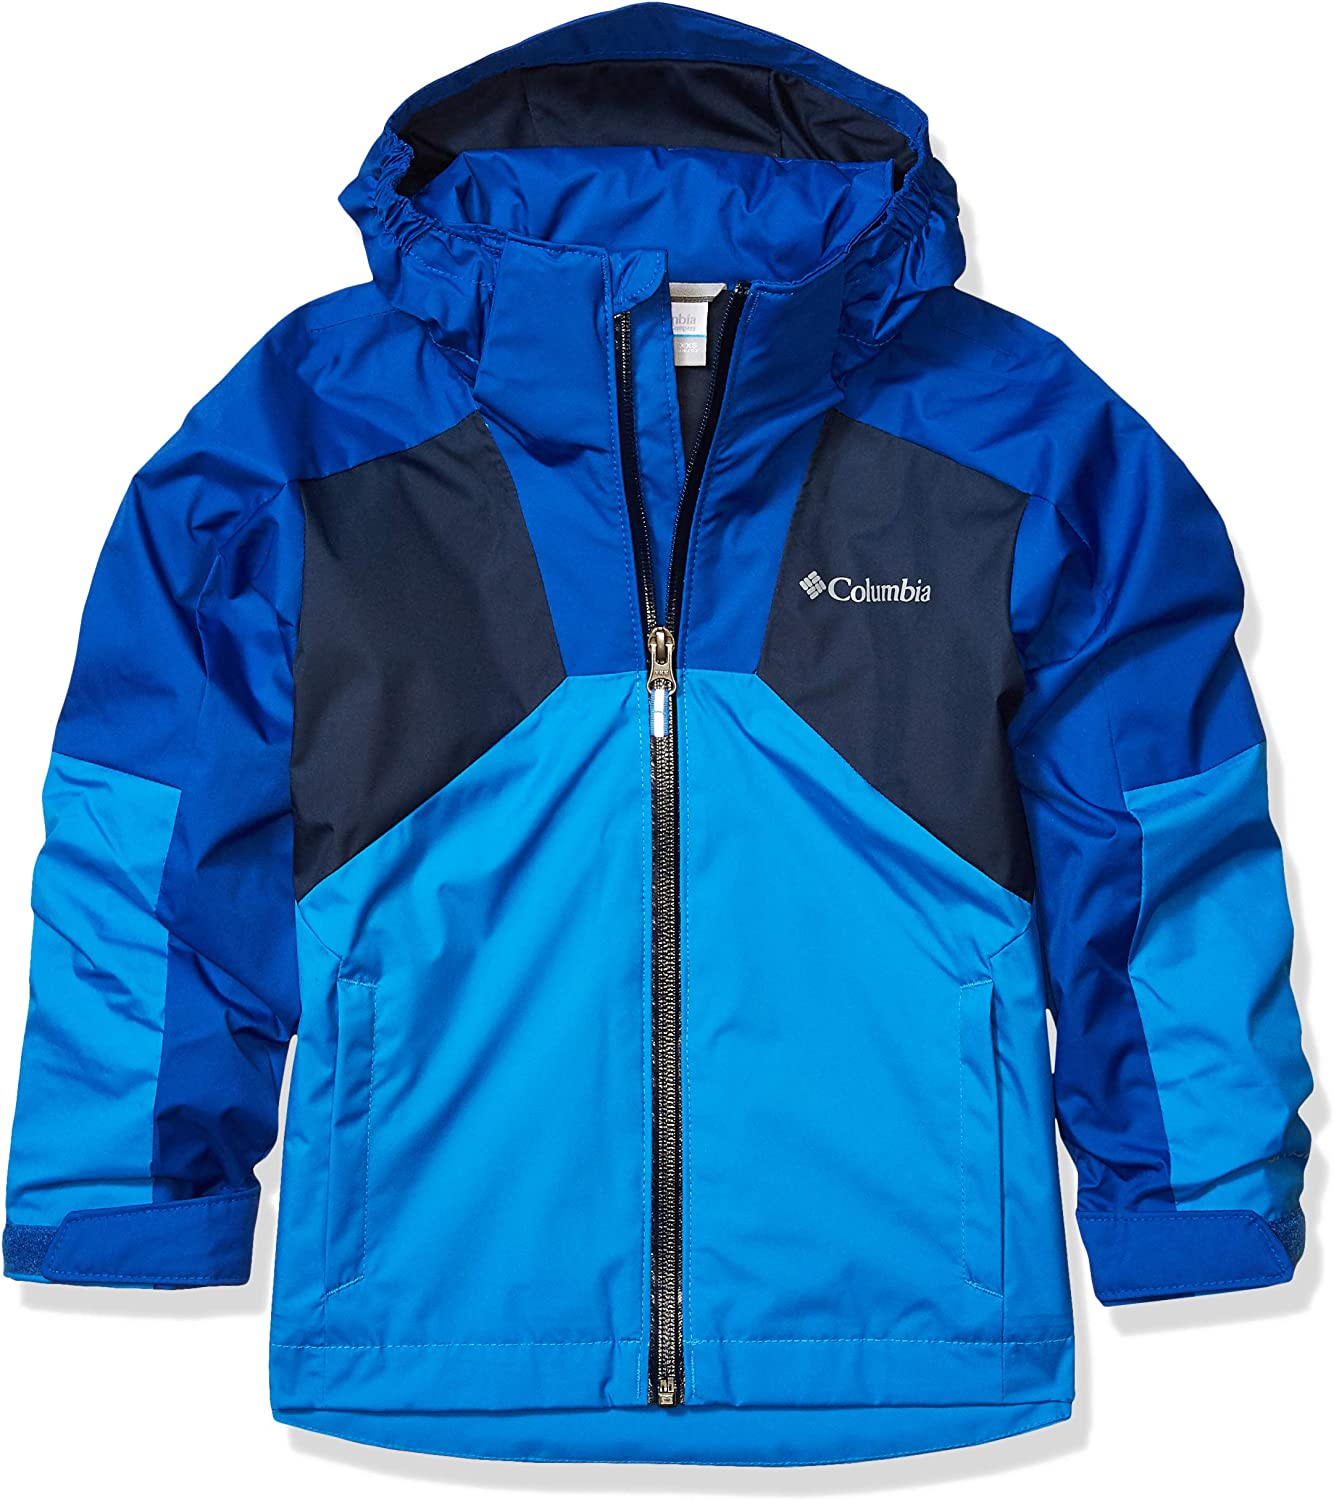 Columbia Girls Youth Boy's Rain Scape Jacket, Waterproof & Breathable, Extended Fit